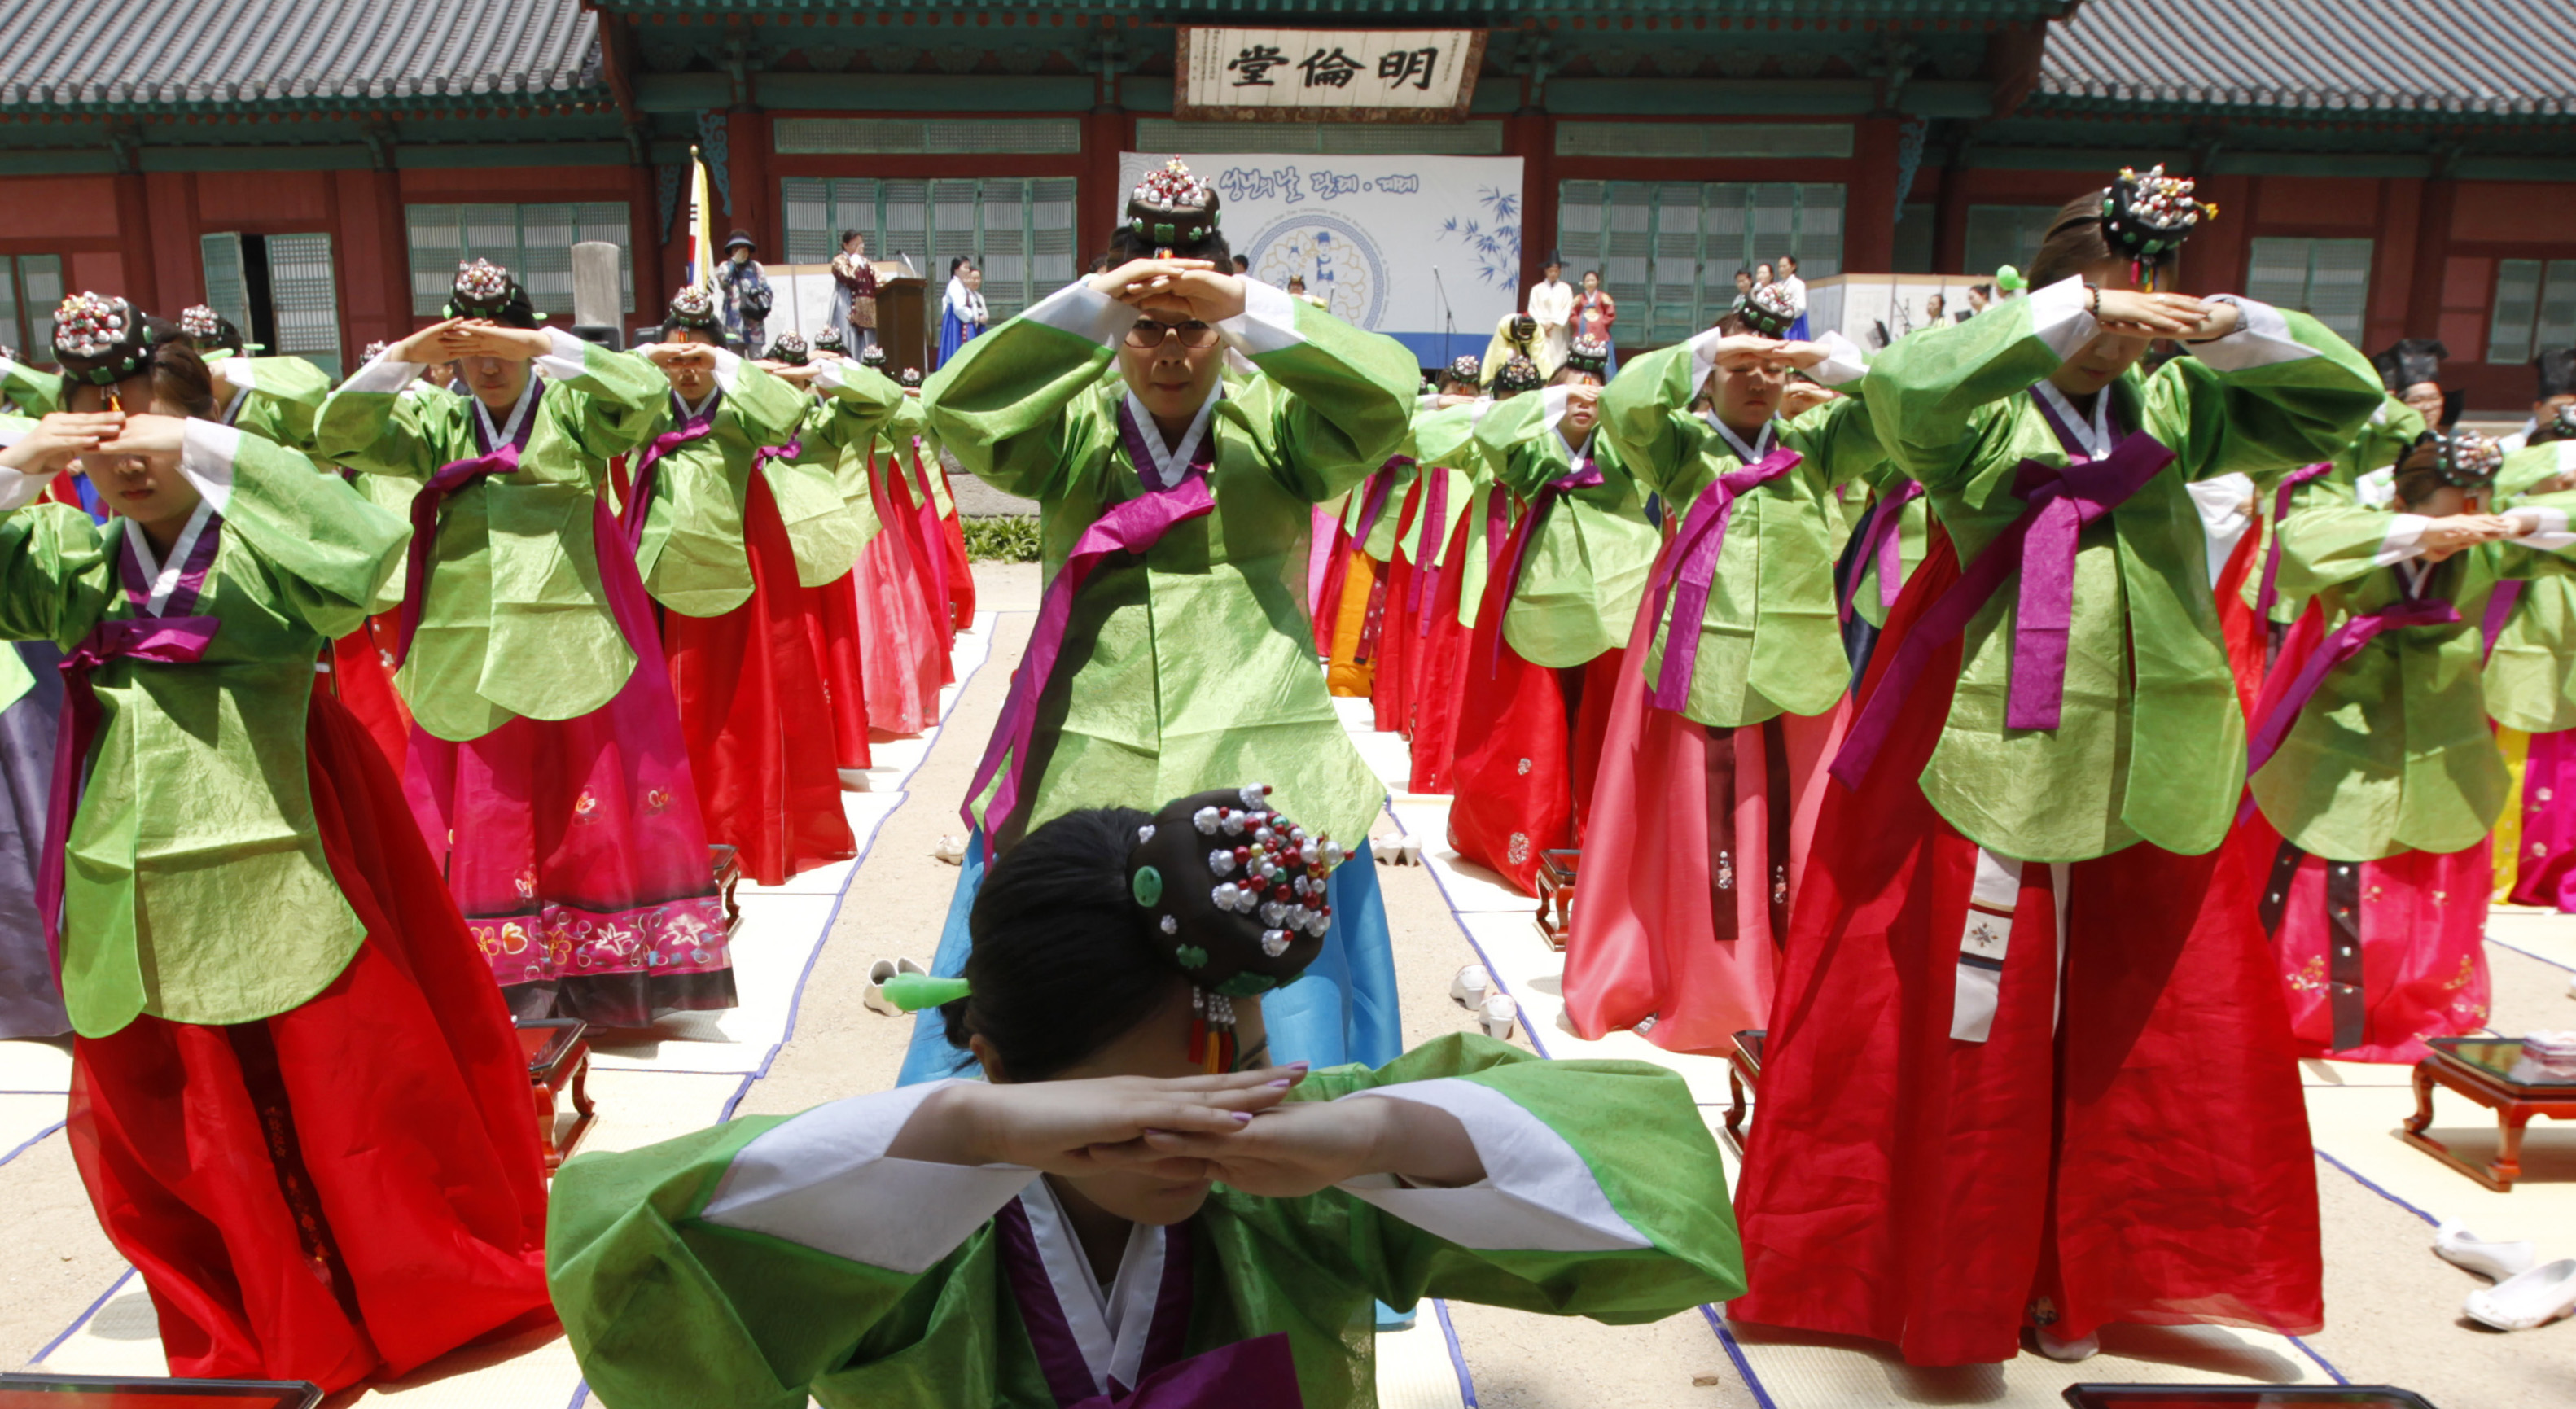 Korean women in traditional garb for maturity ritual into adulthood.